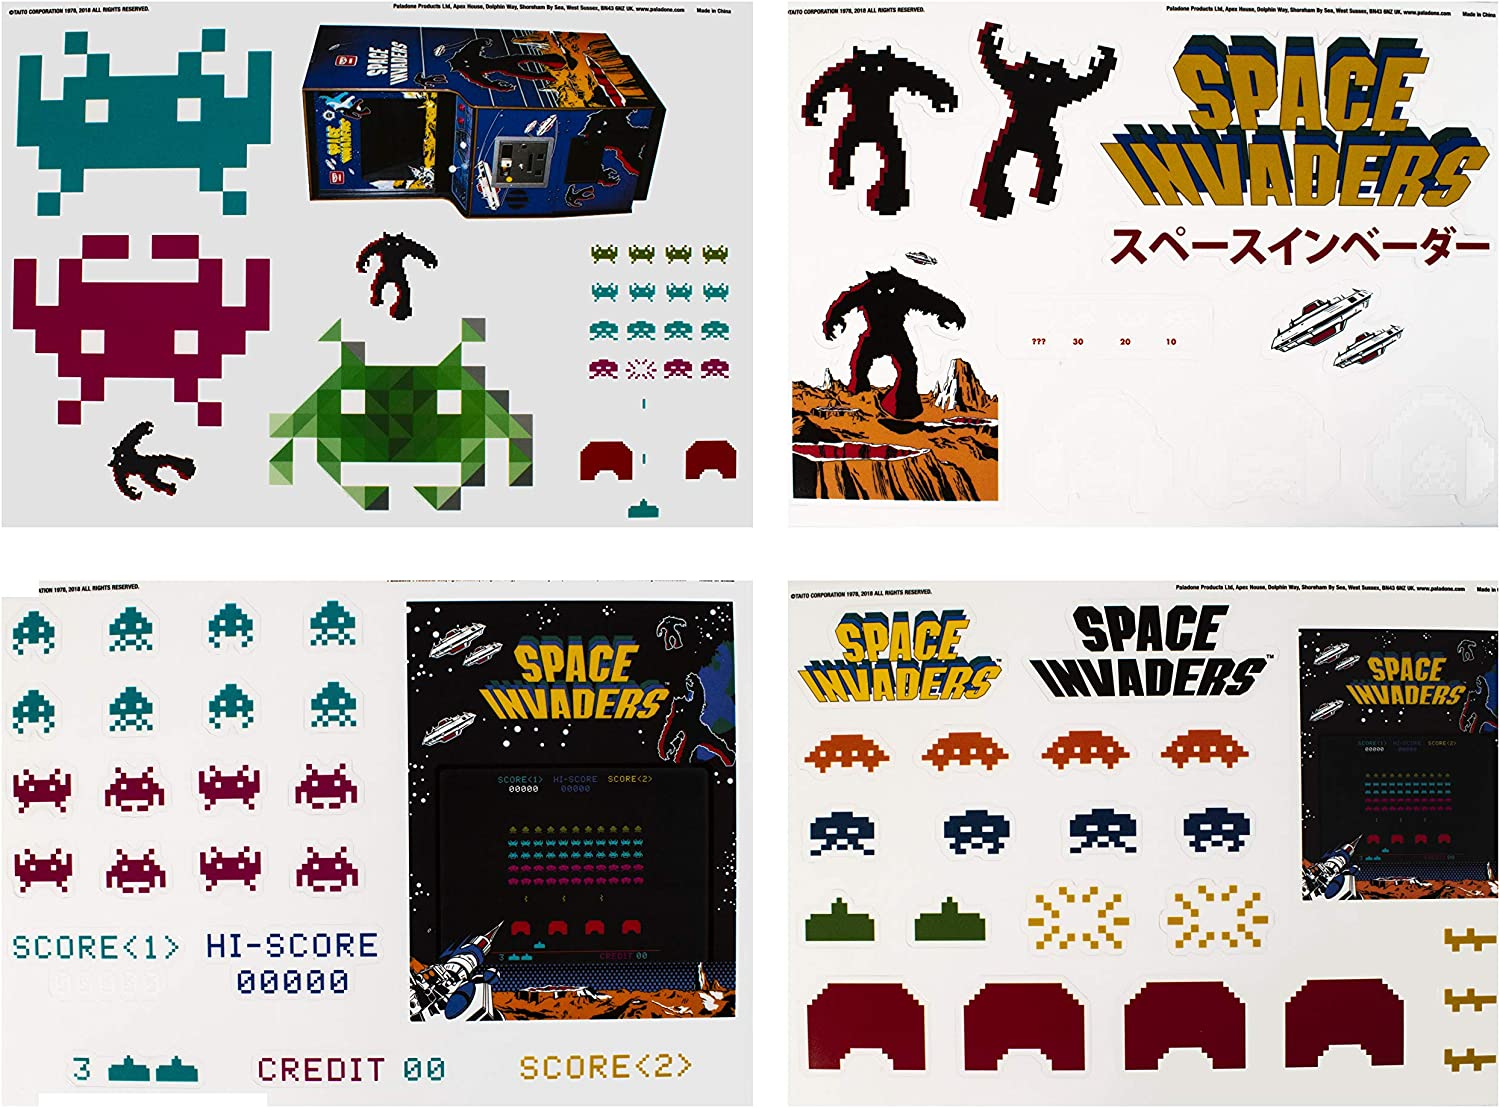 Paladone Space Invaders Gadget Decals, Vinyl Sticker Clings, 4 Sheets